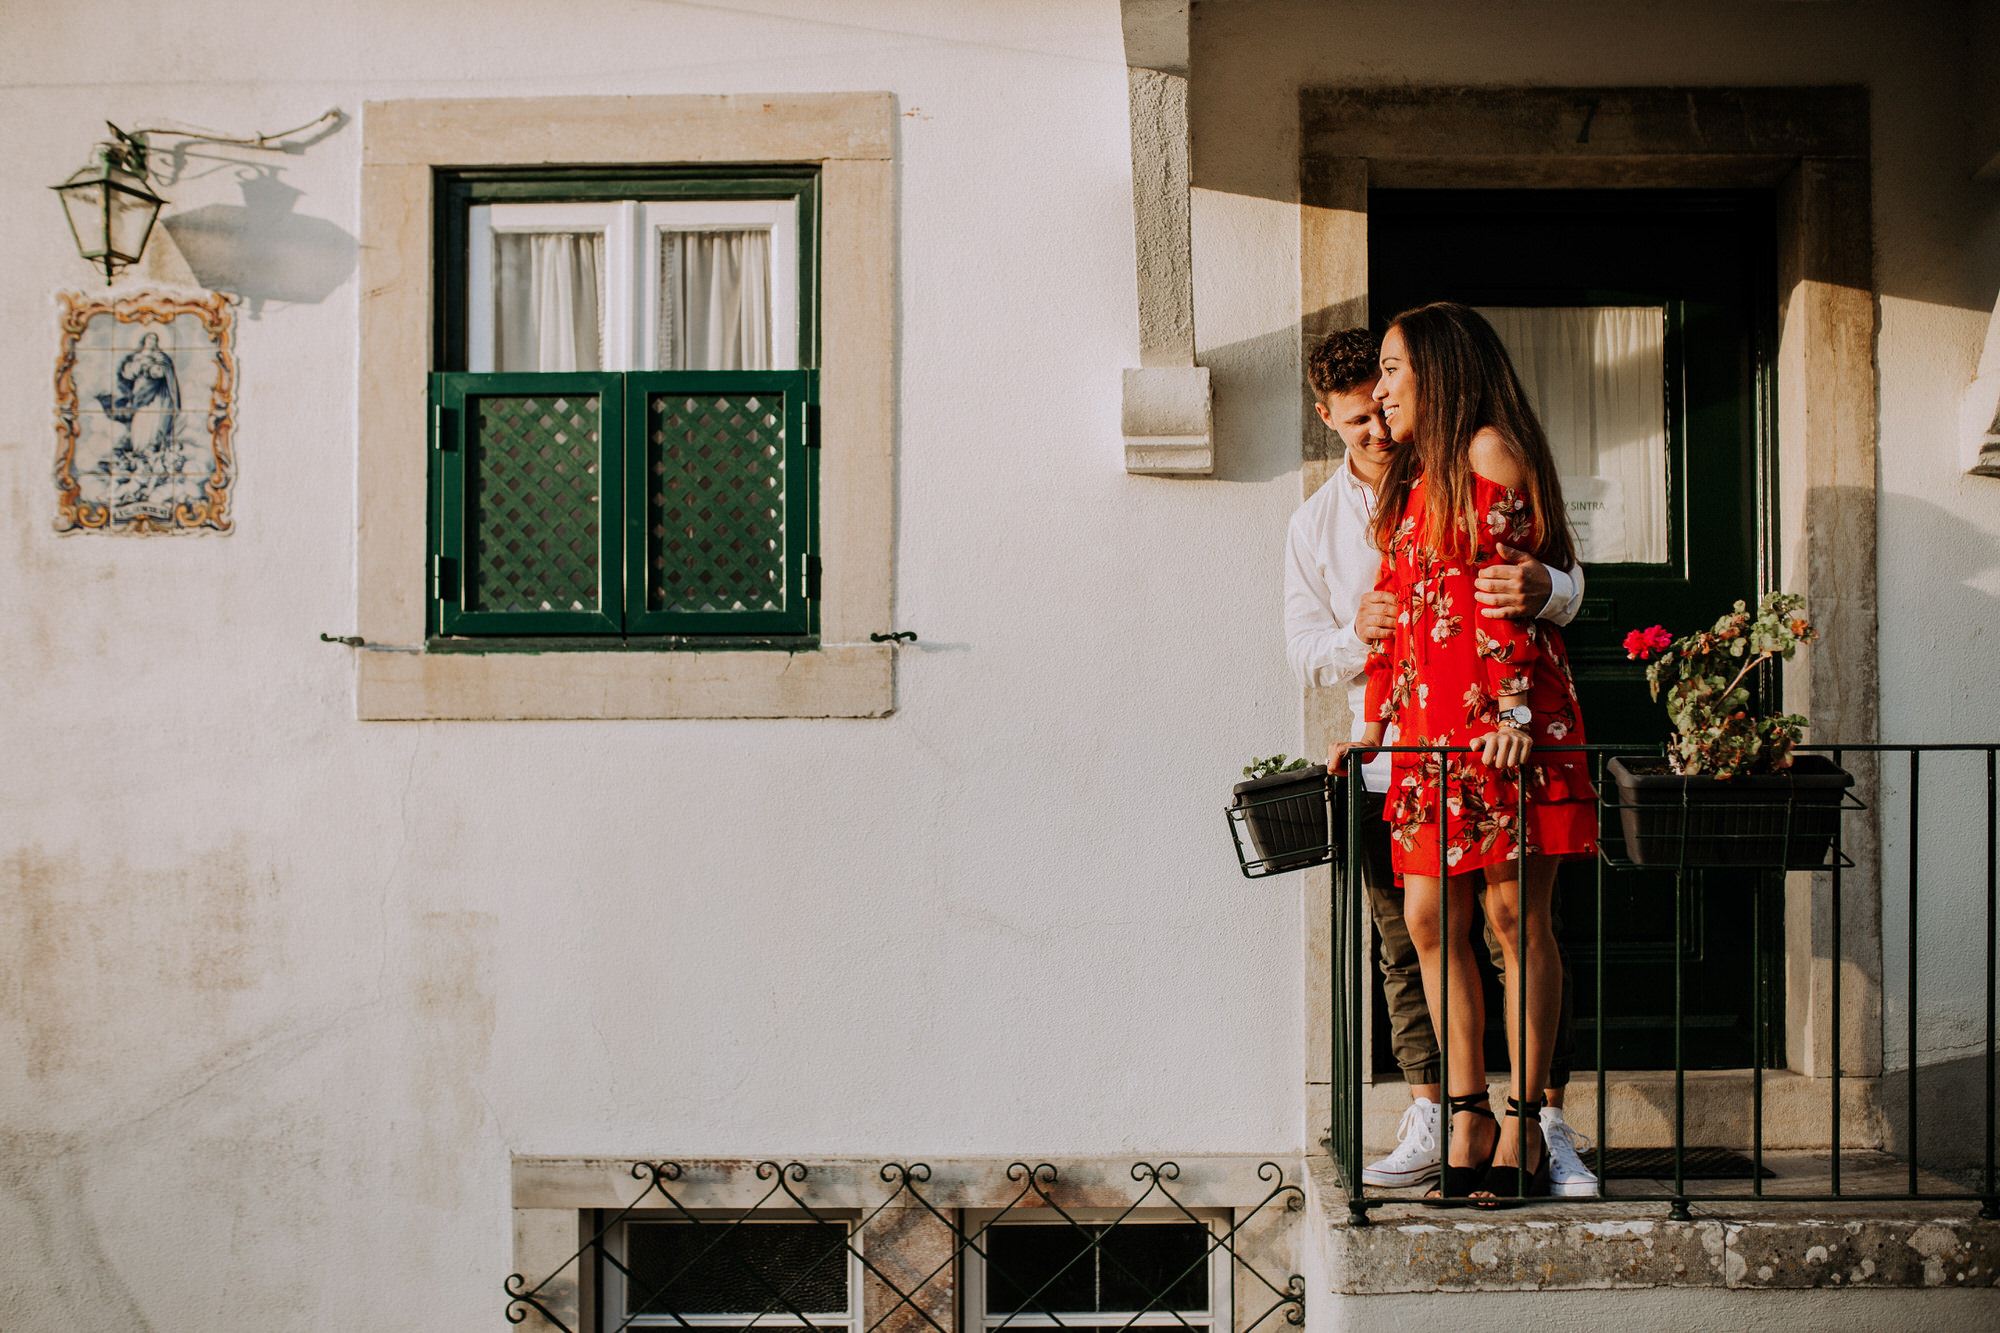 22-sessao-noivado-engagement-love-session-Sintra-lisboa-town-wedding-photography-photographer-natural-best-venue-planner-destination-filipe-santiago-fotografia-lifestyle-documentary